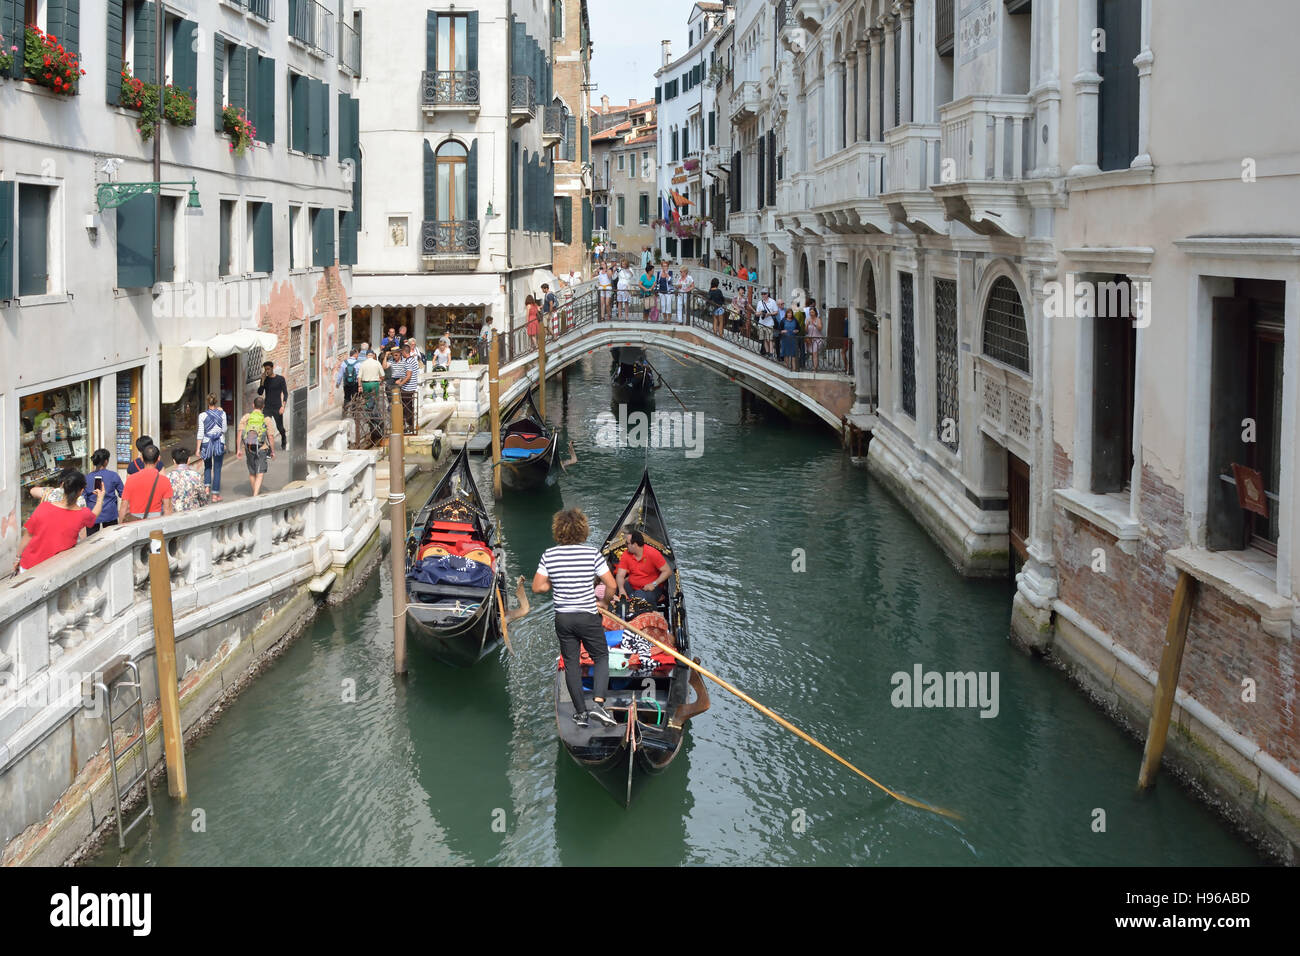 Gondolier with Tourists on a canal in Venice. - Stock Image